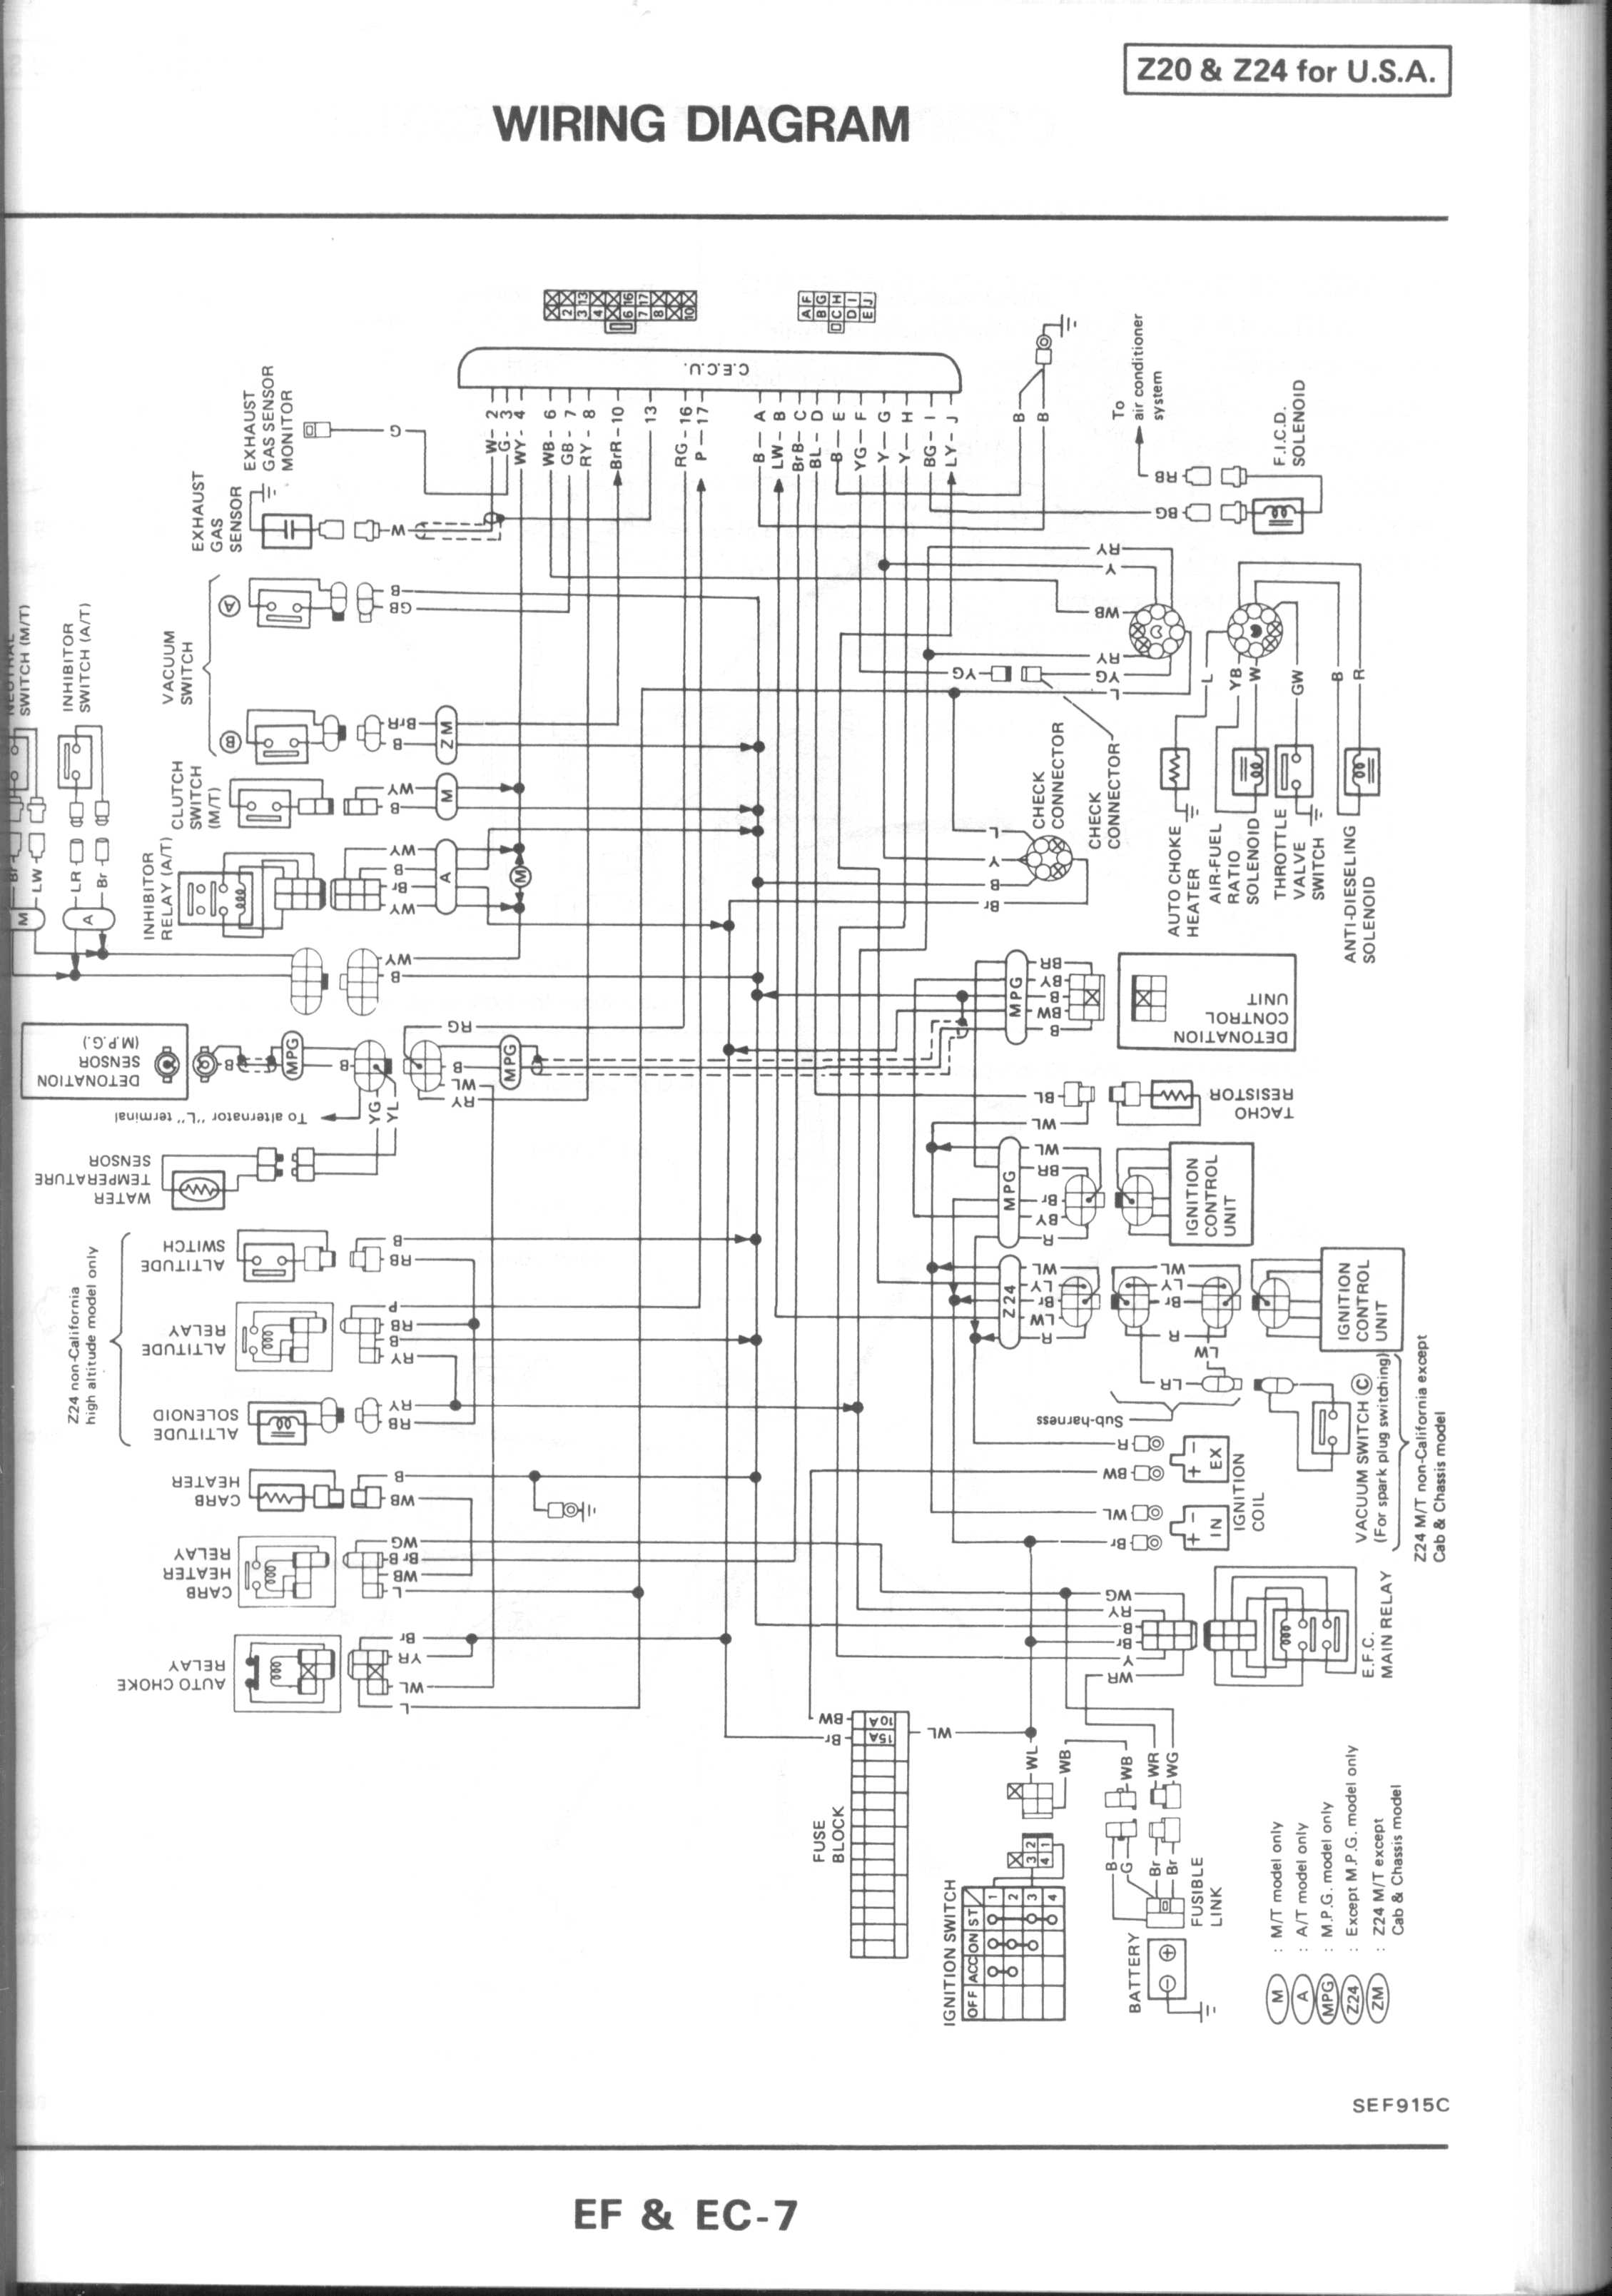 1993 Nissan D21 Ignition Wiring Diagram Images Gallery